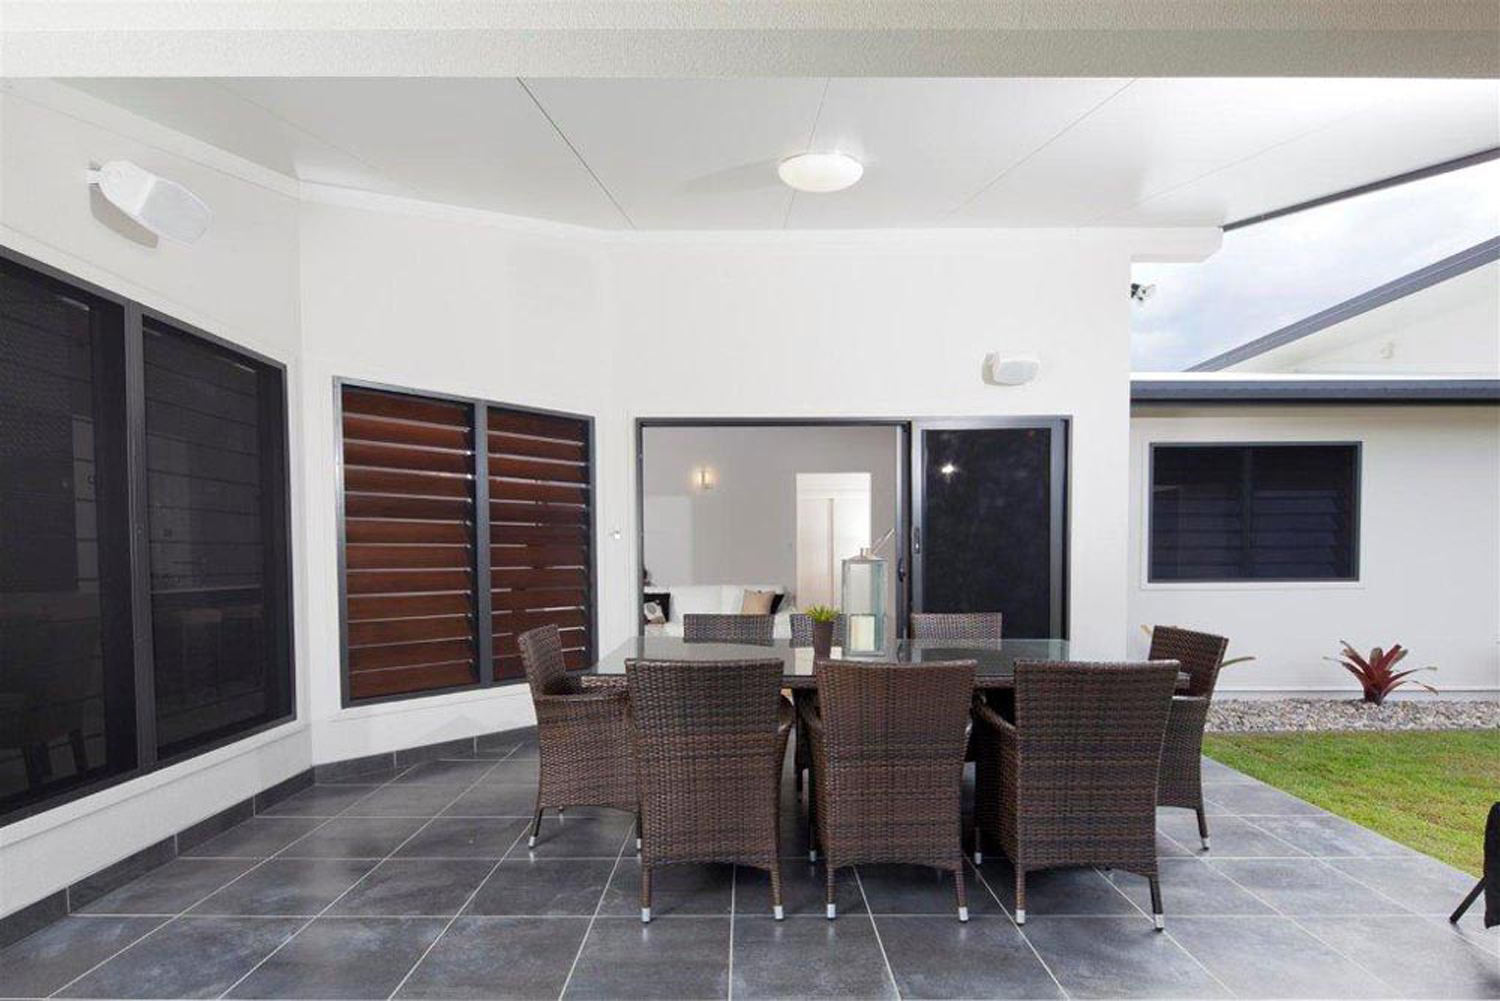 Breezway Louvre Windows and Screening Options